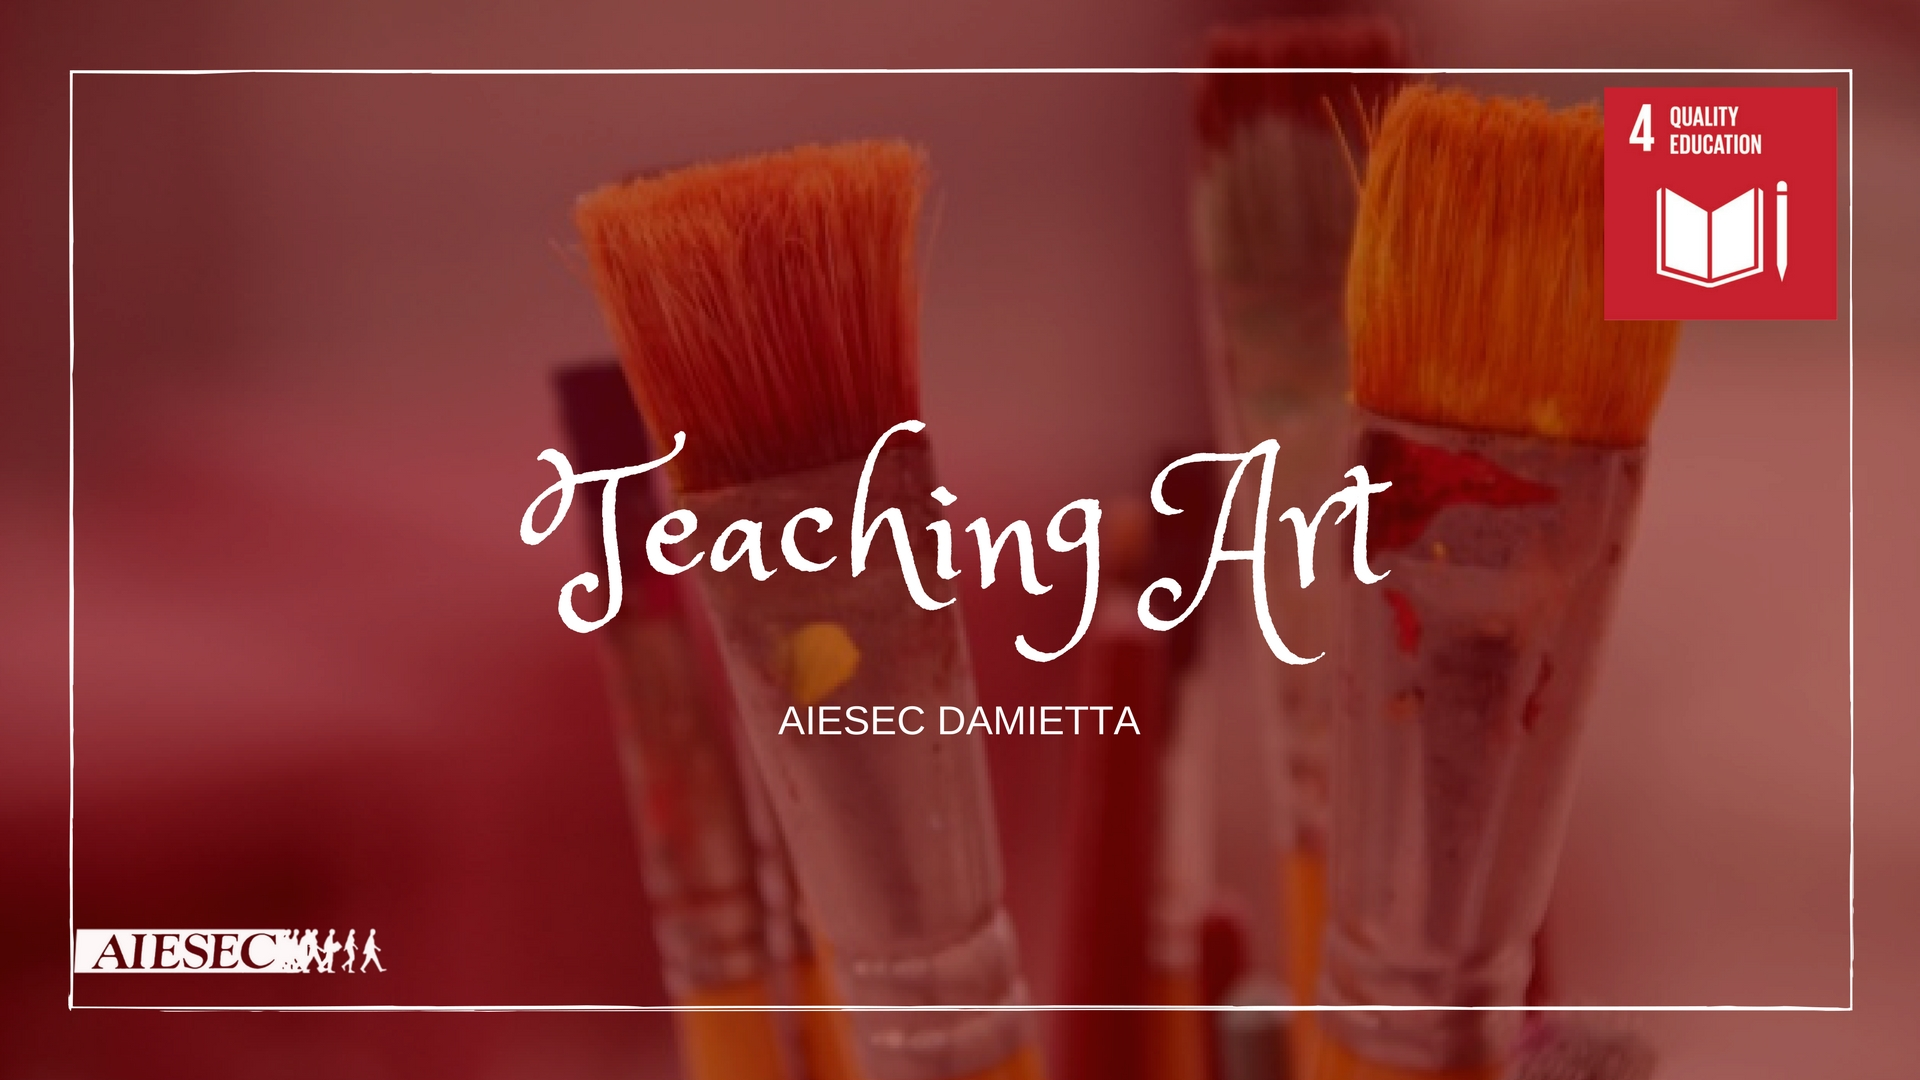 Teaching Arts for Quality Education